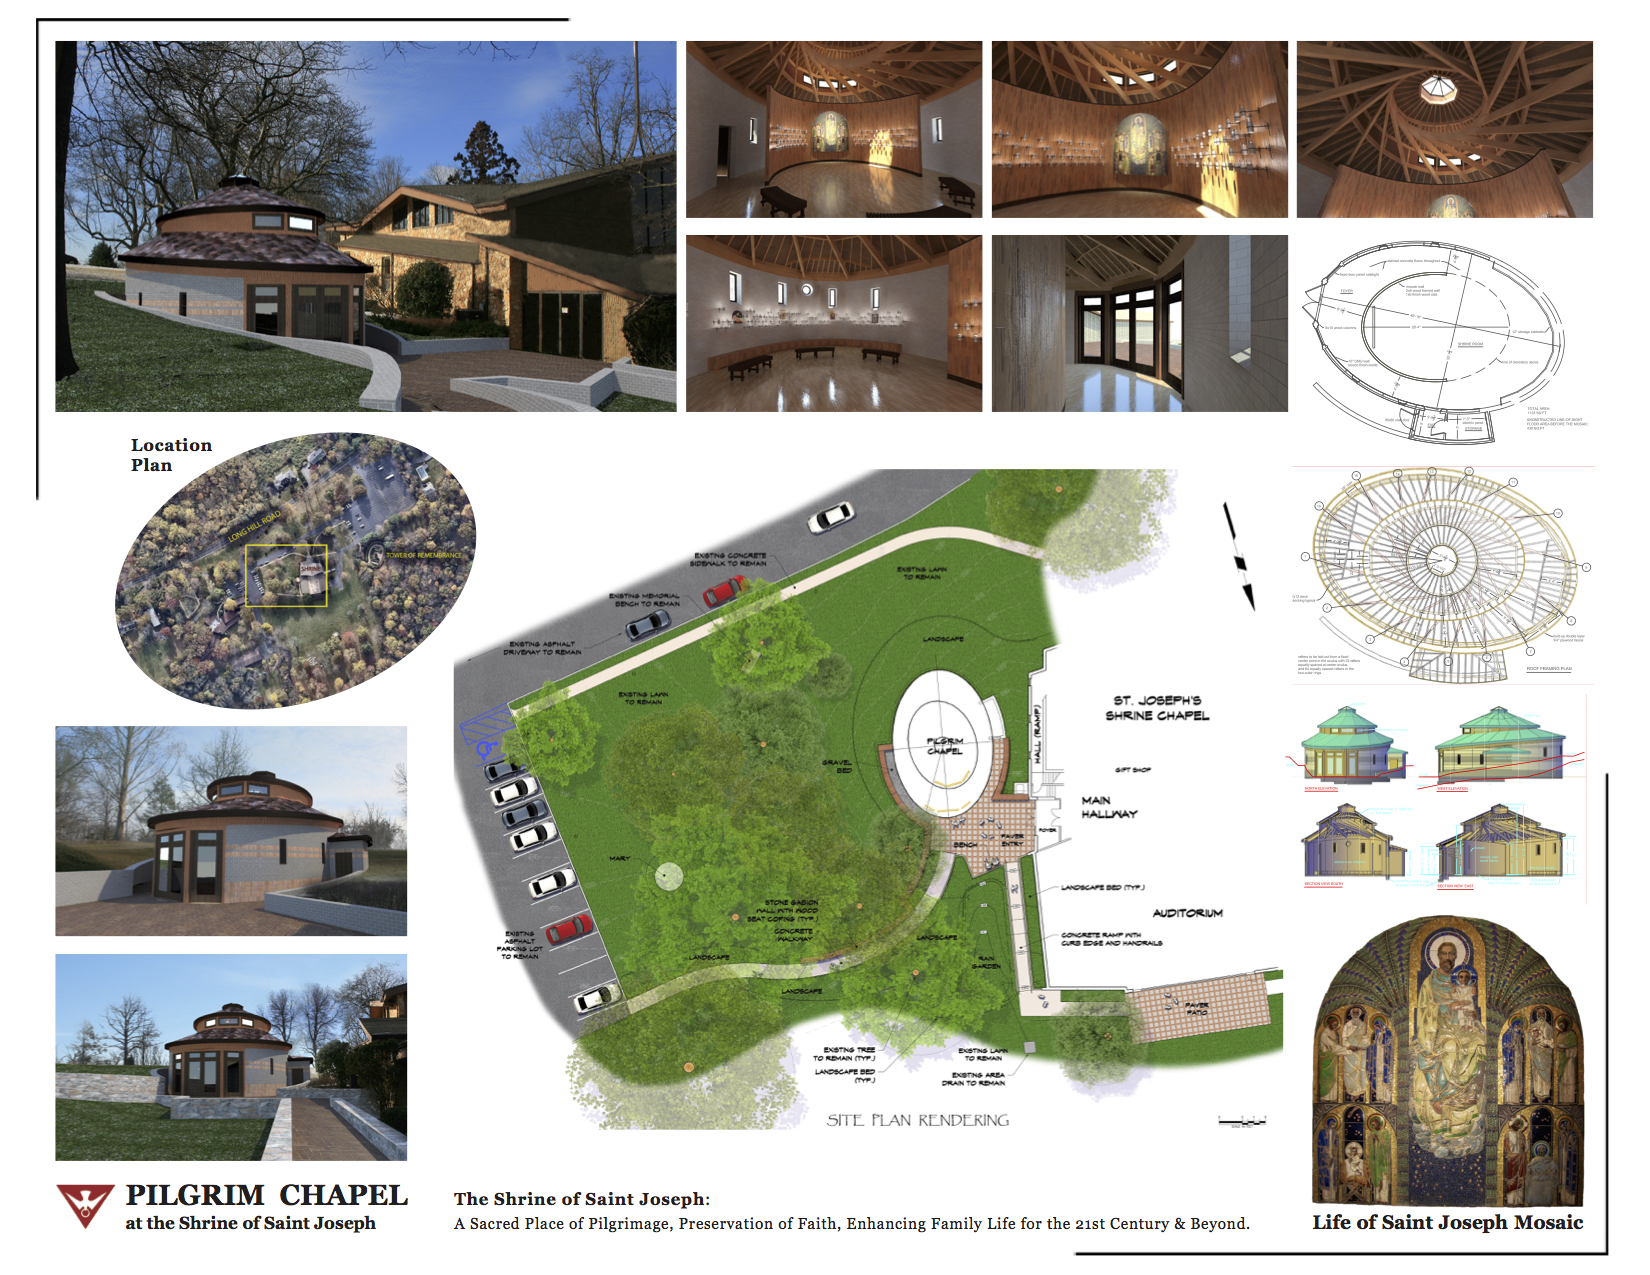 Pilgrim Chapel Site Plan Rendering